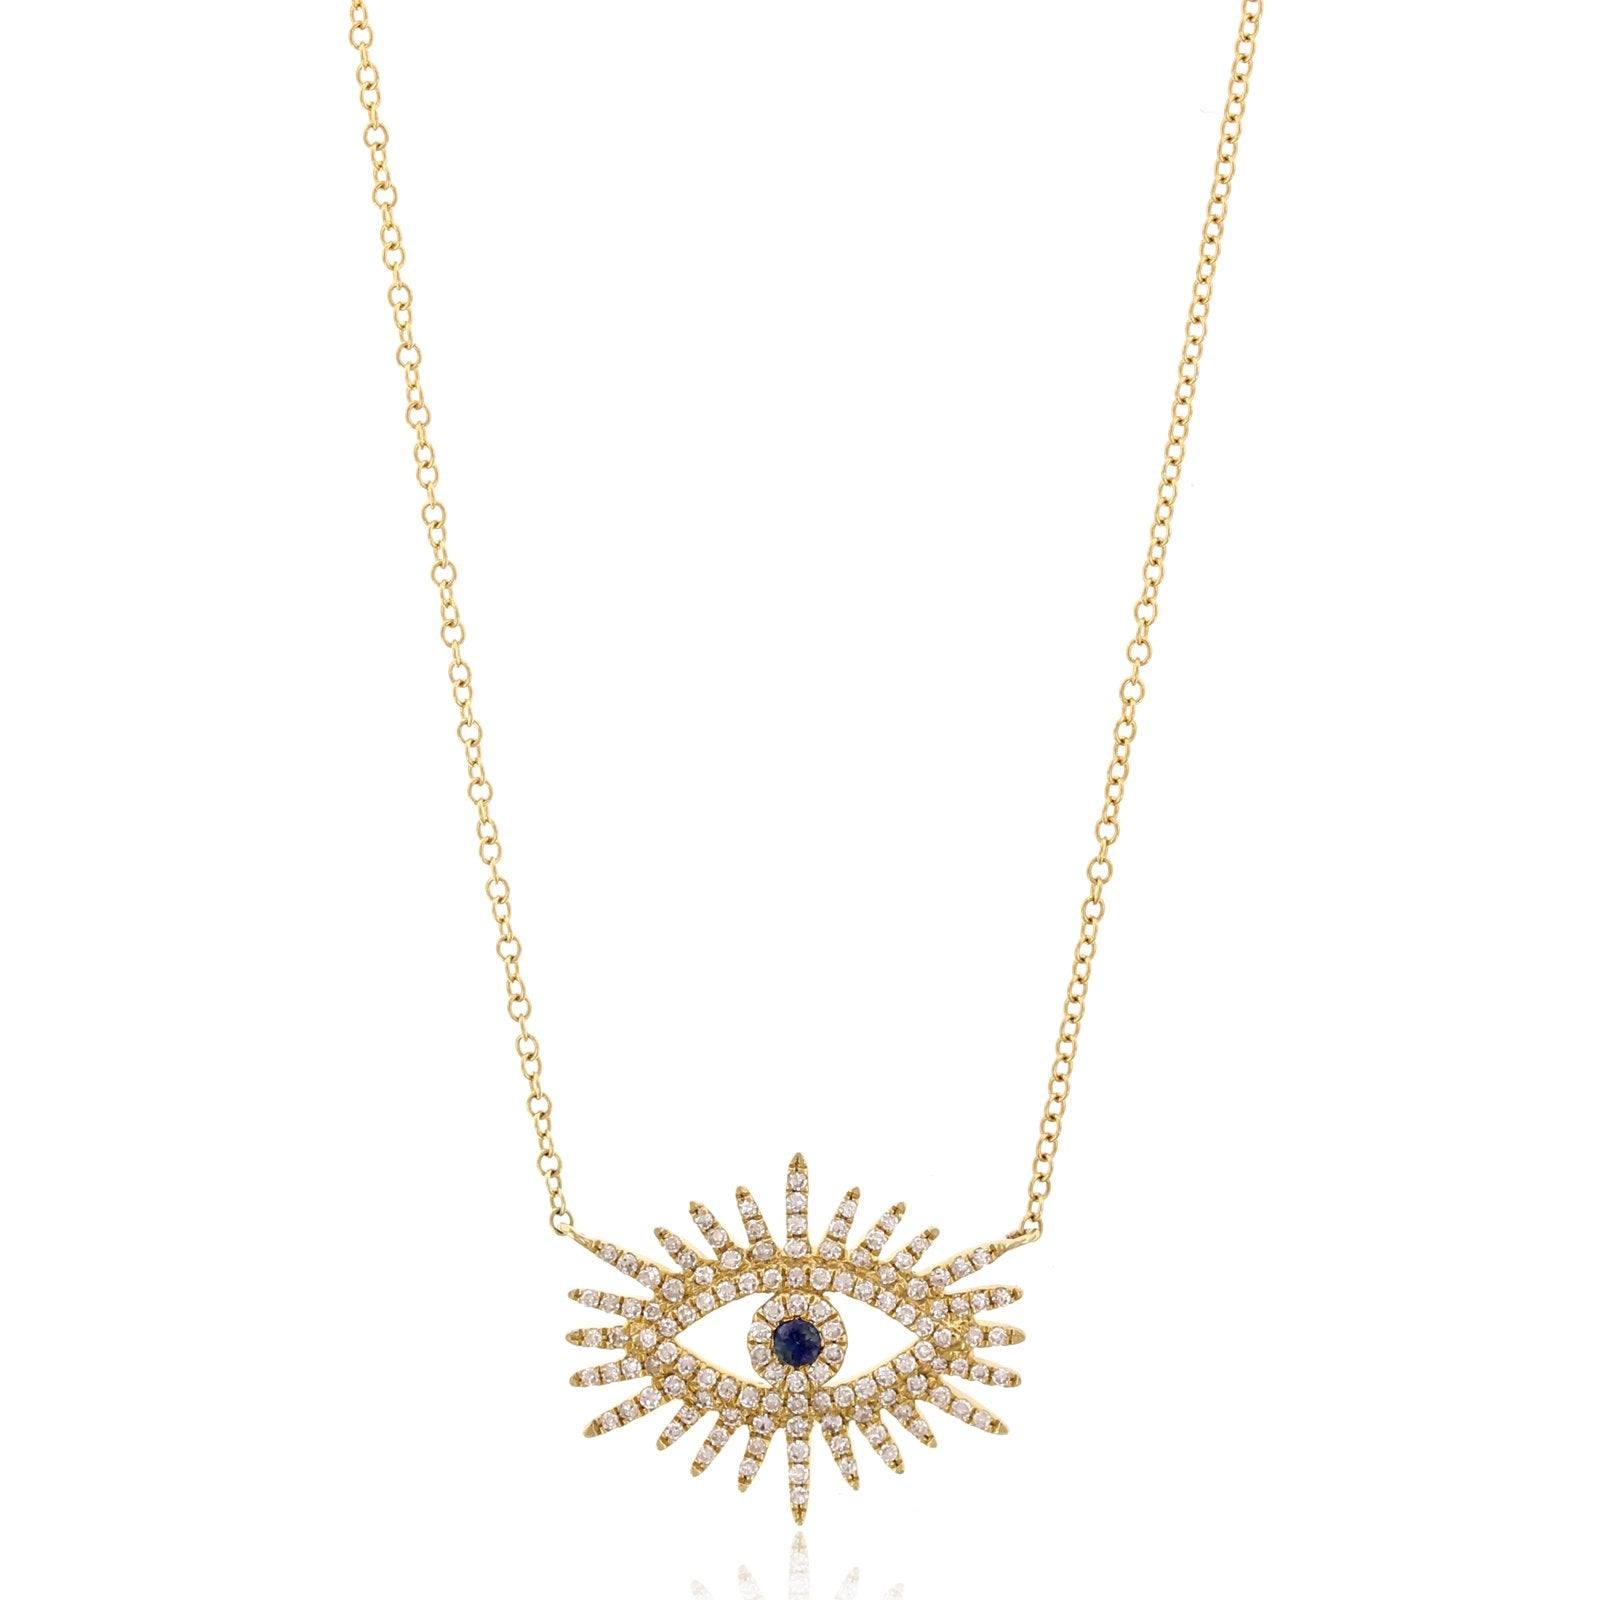 14K Yellow Gold Diamond Starburst Eye Necklace